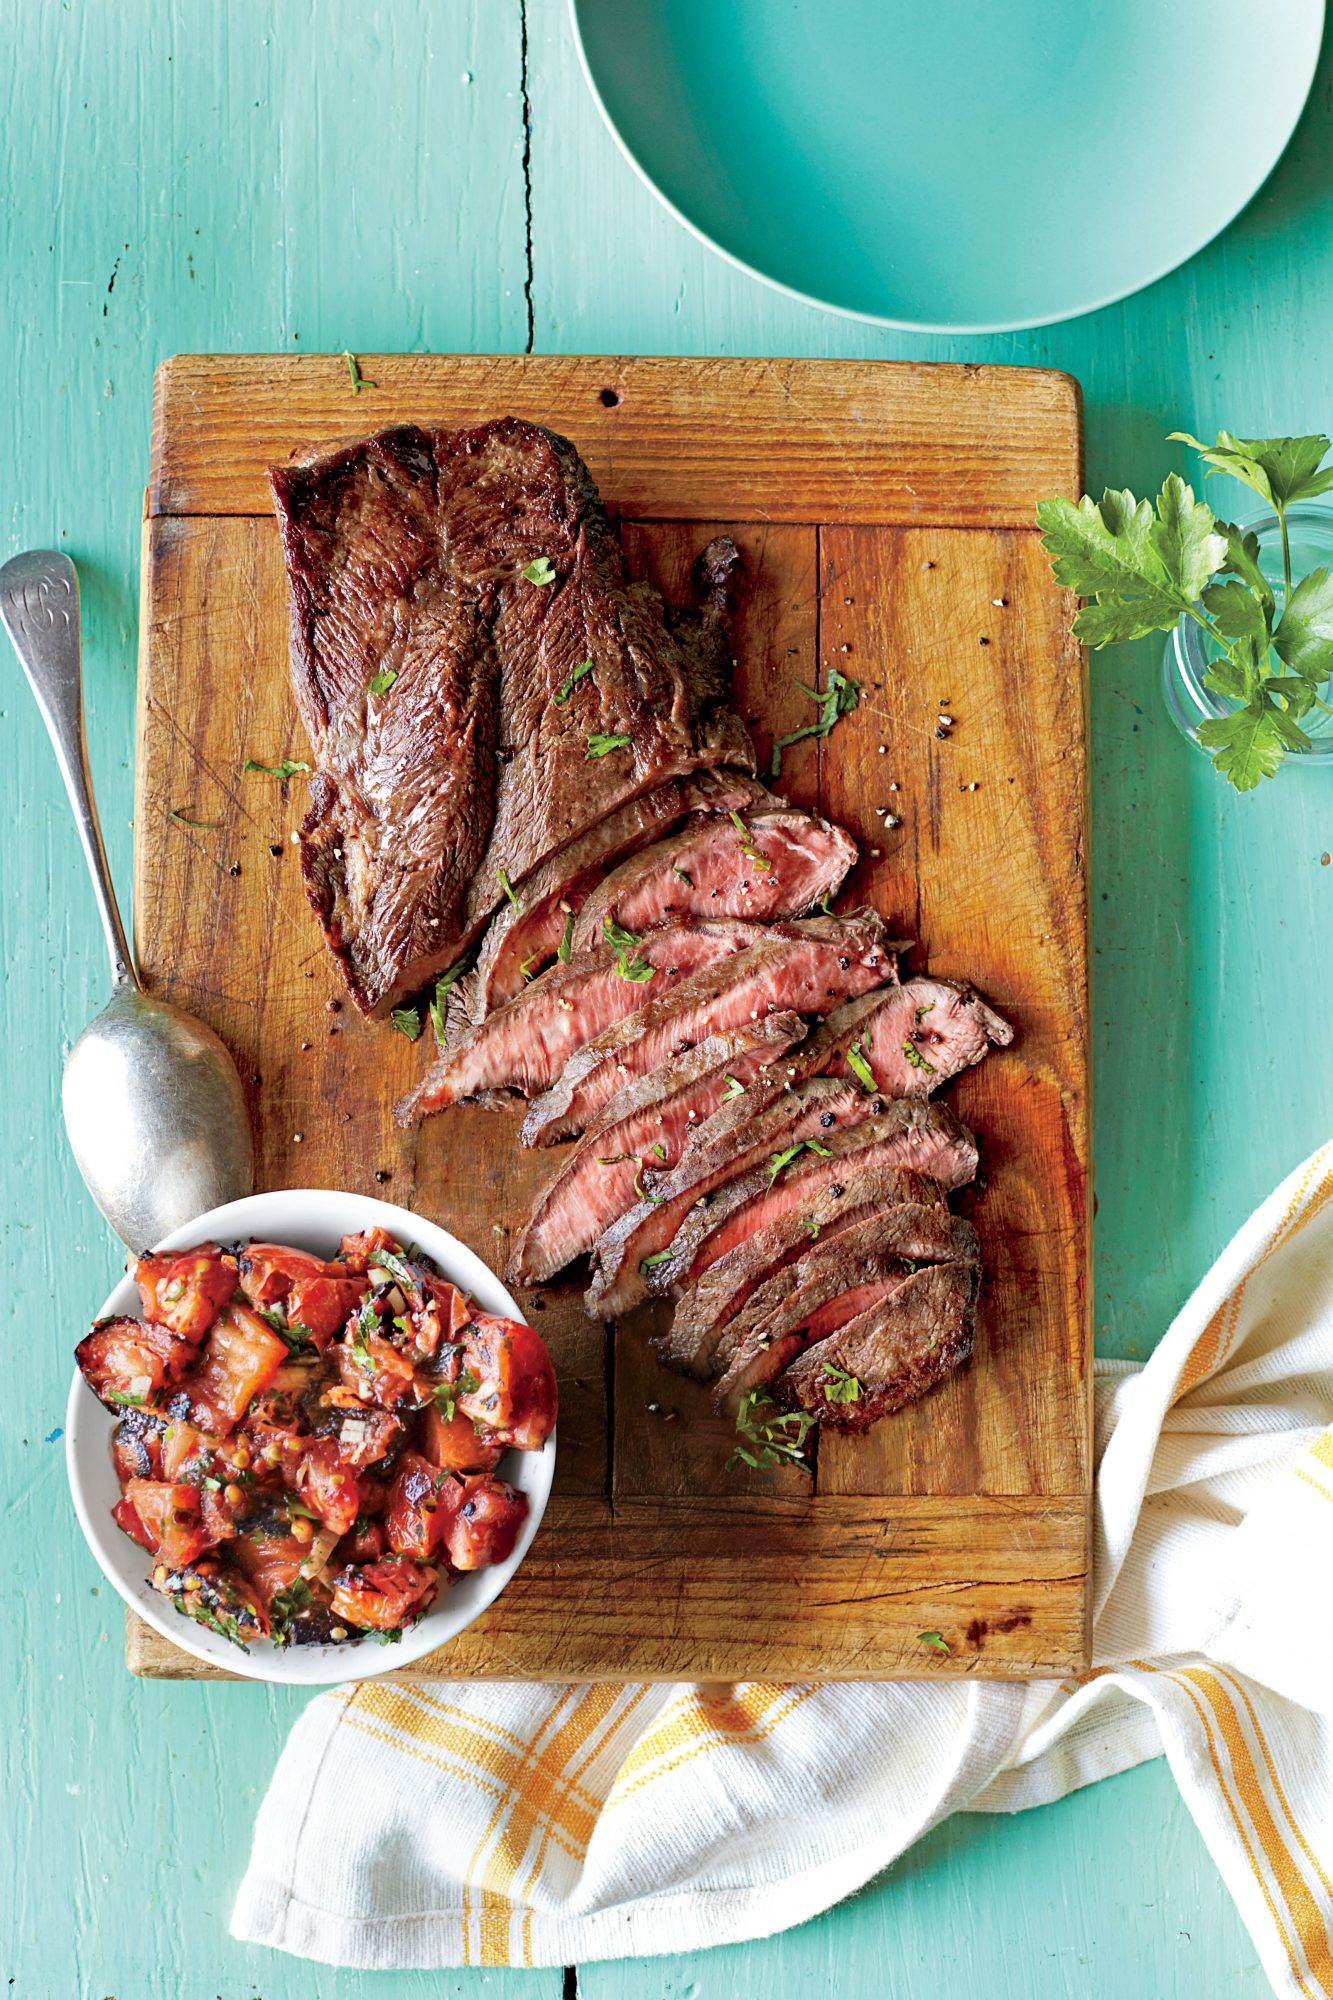 Grilled Flat Iron Steak with Charred Tomato Relish